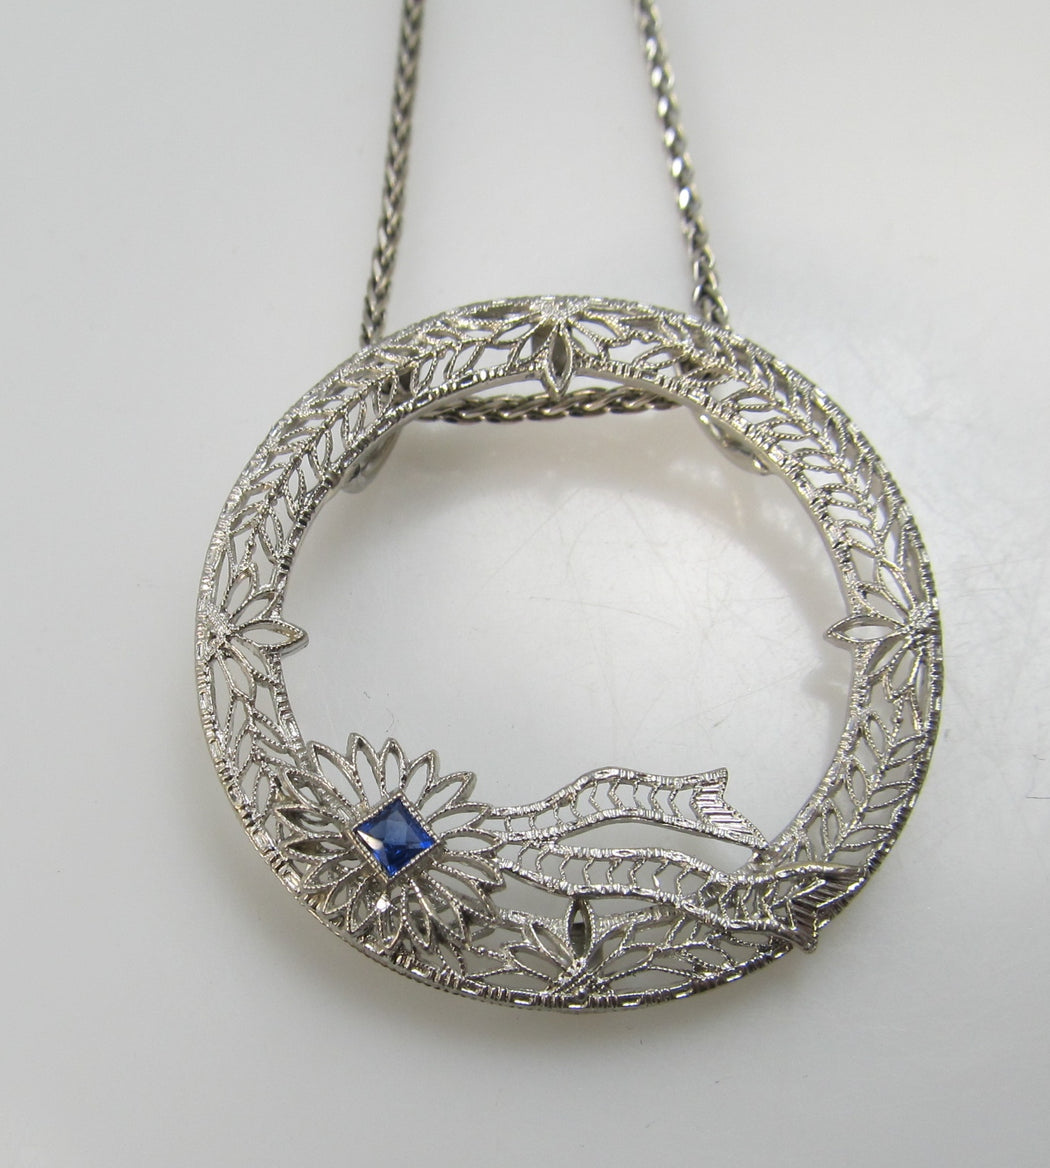 14k white gold filigree circle necklace with a sapphire, circa 1920